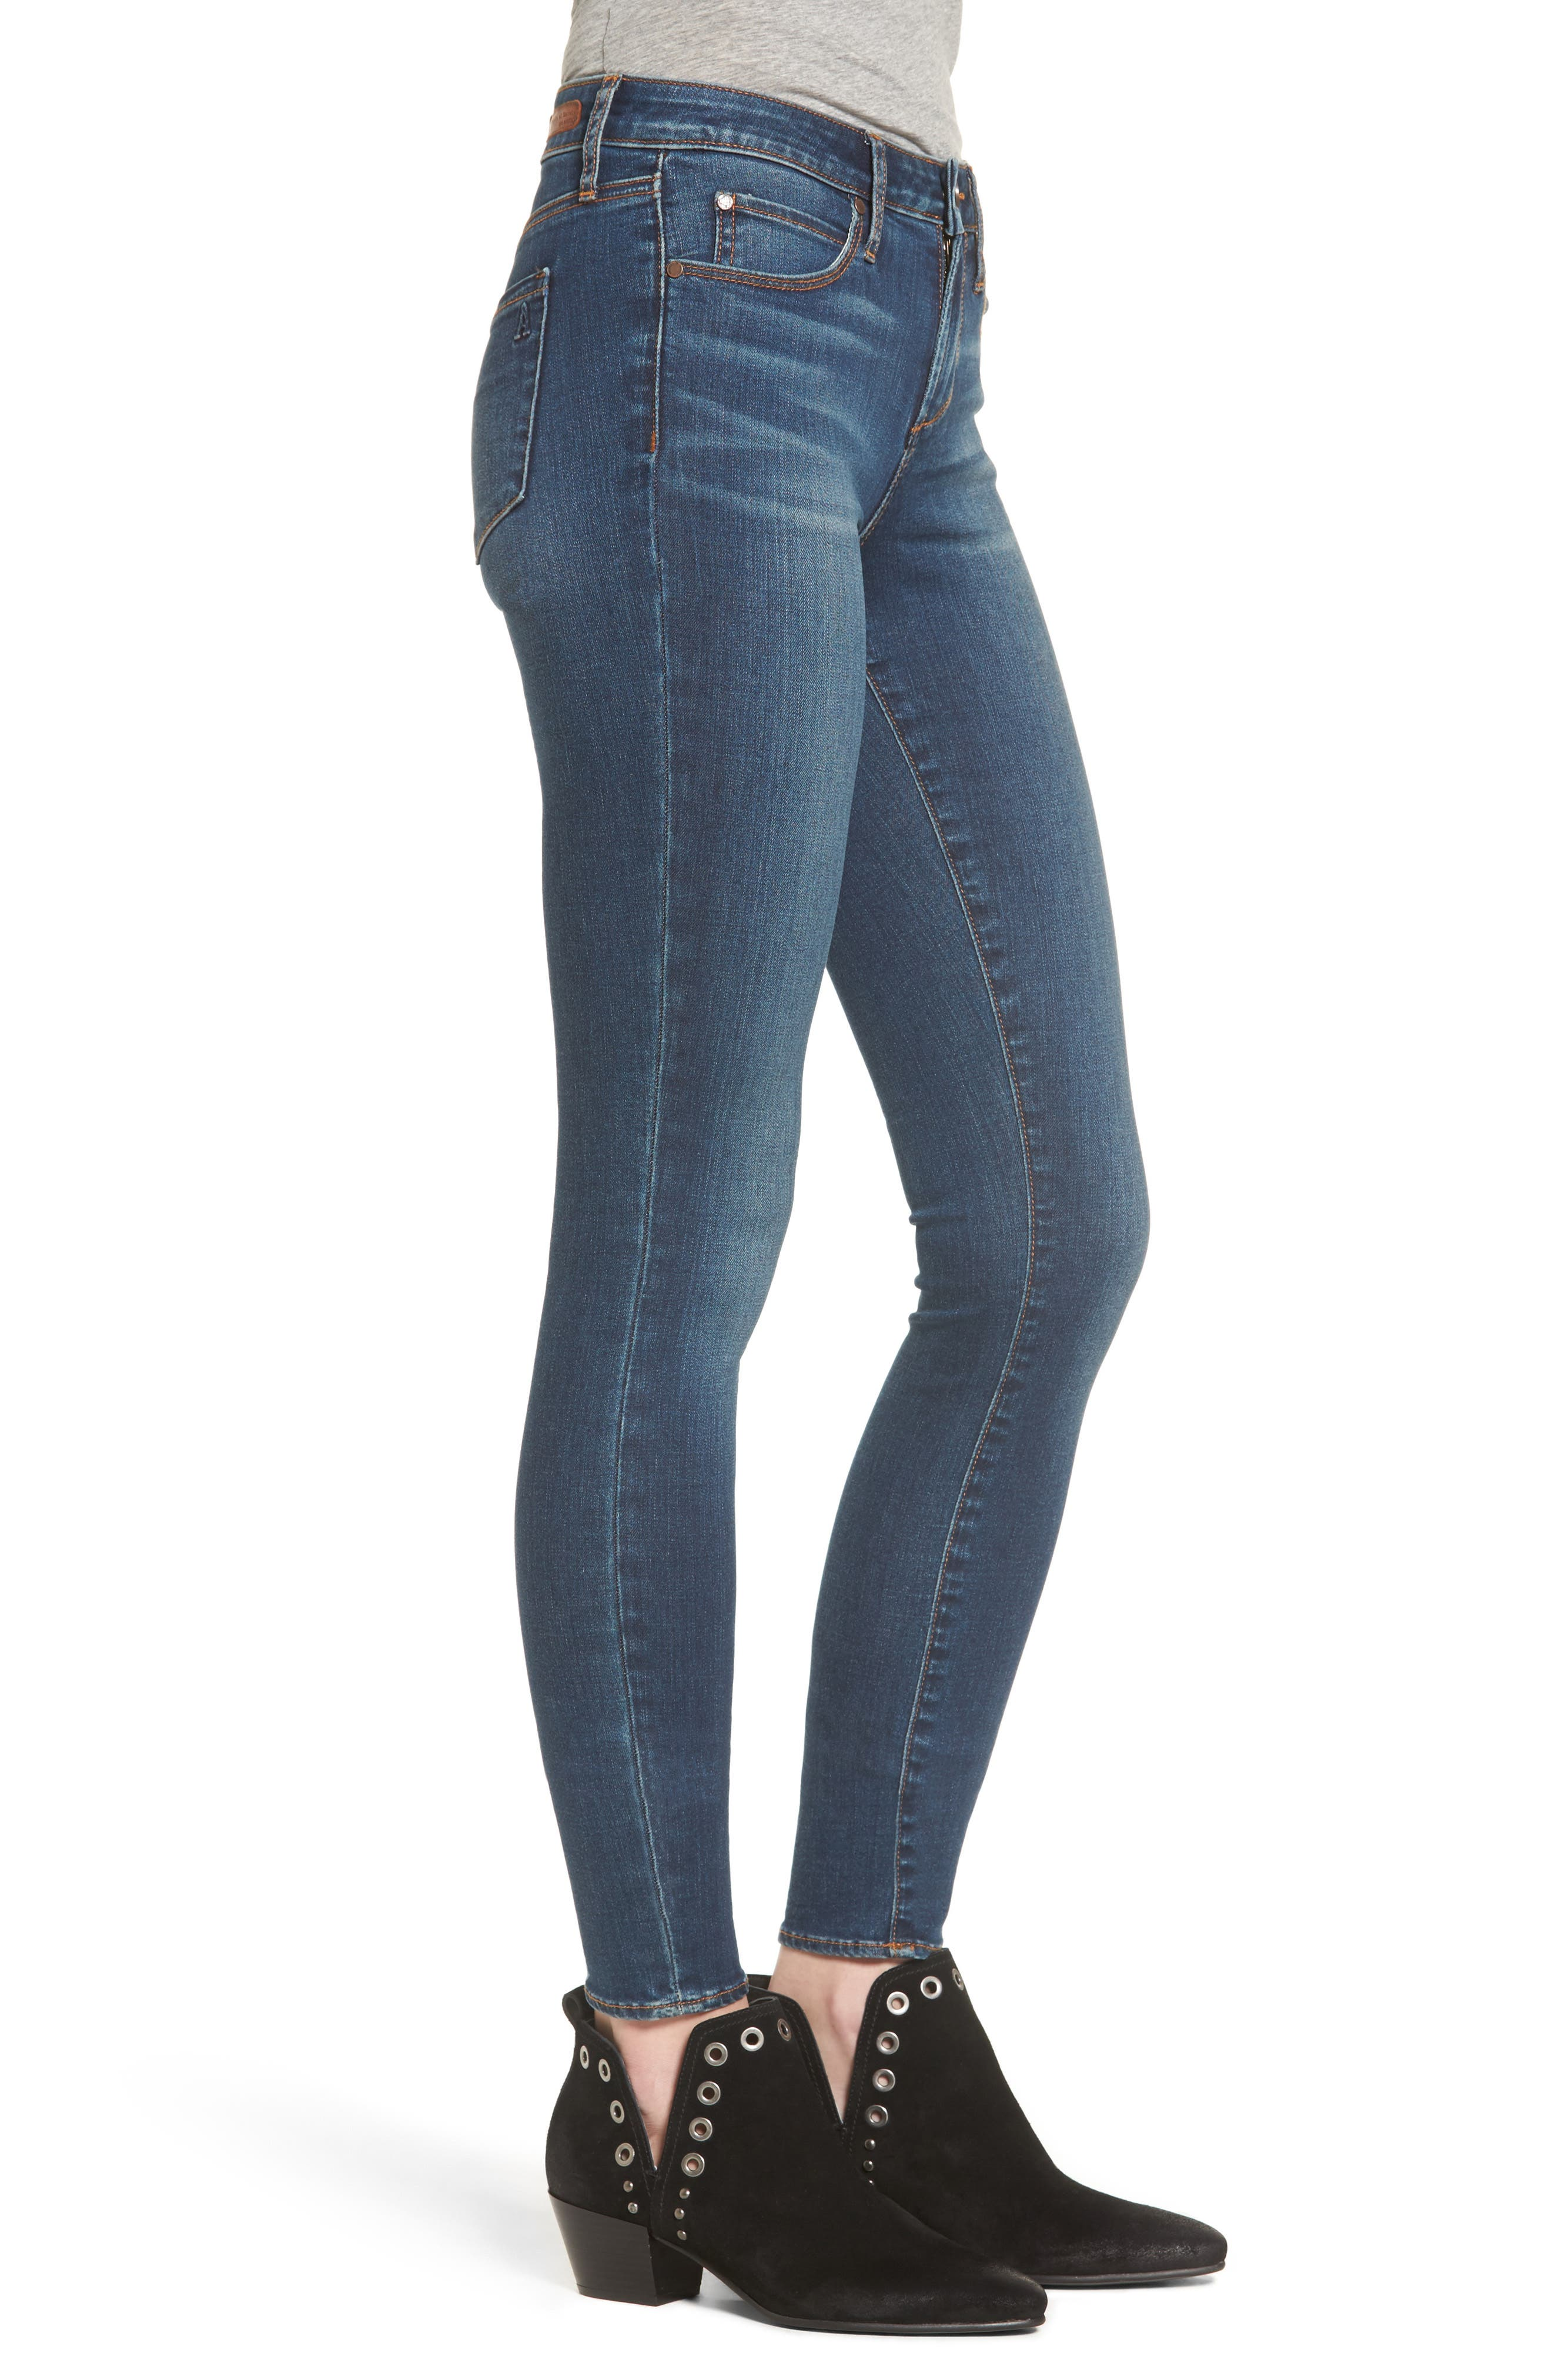 ARTICLES OF SOCIETY, Mya Skinny Jeans, Alternate thumbnail 3, color, 499